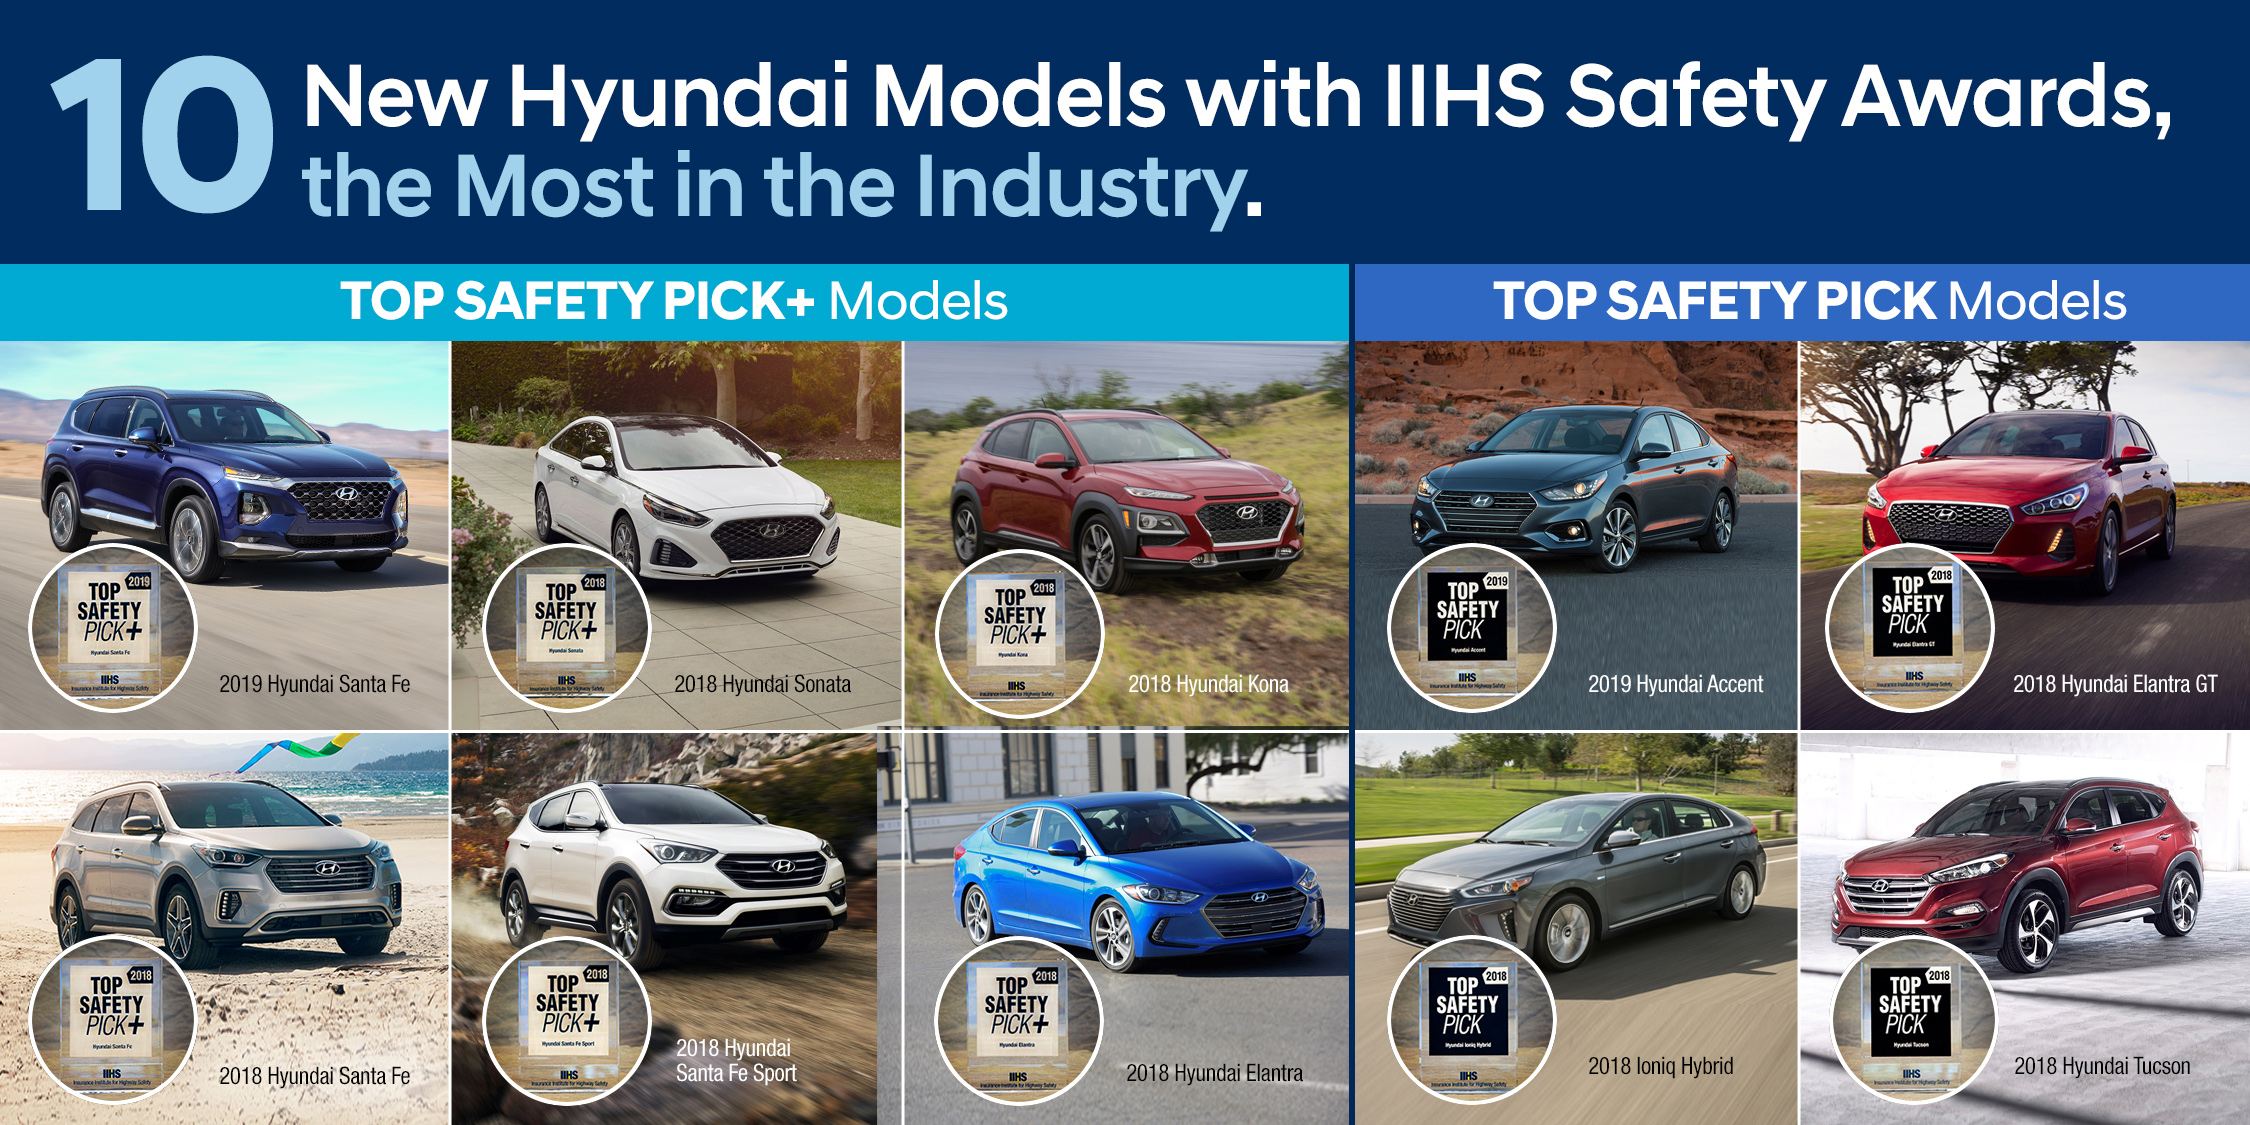 HYUNDAI HAS THE MOST IIHS TOP SAFETY PICK+ AND TOP SAFETY PICK AWARDS IN THE INDUSTRY